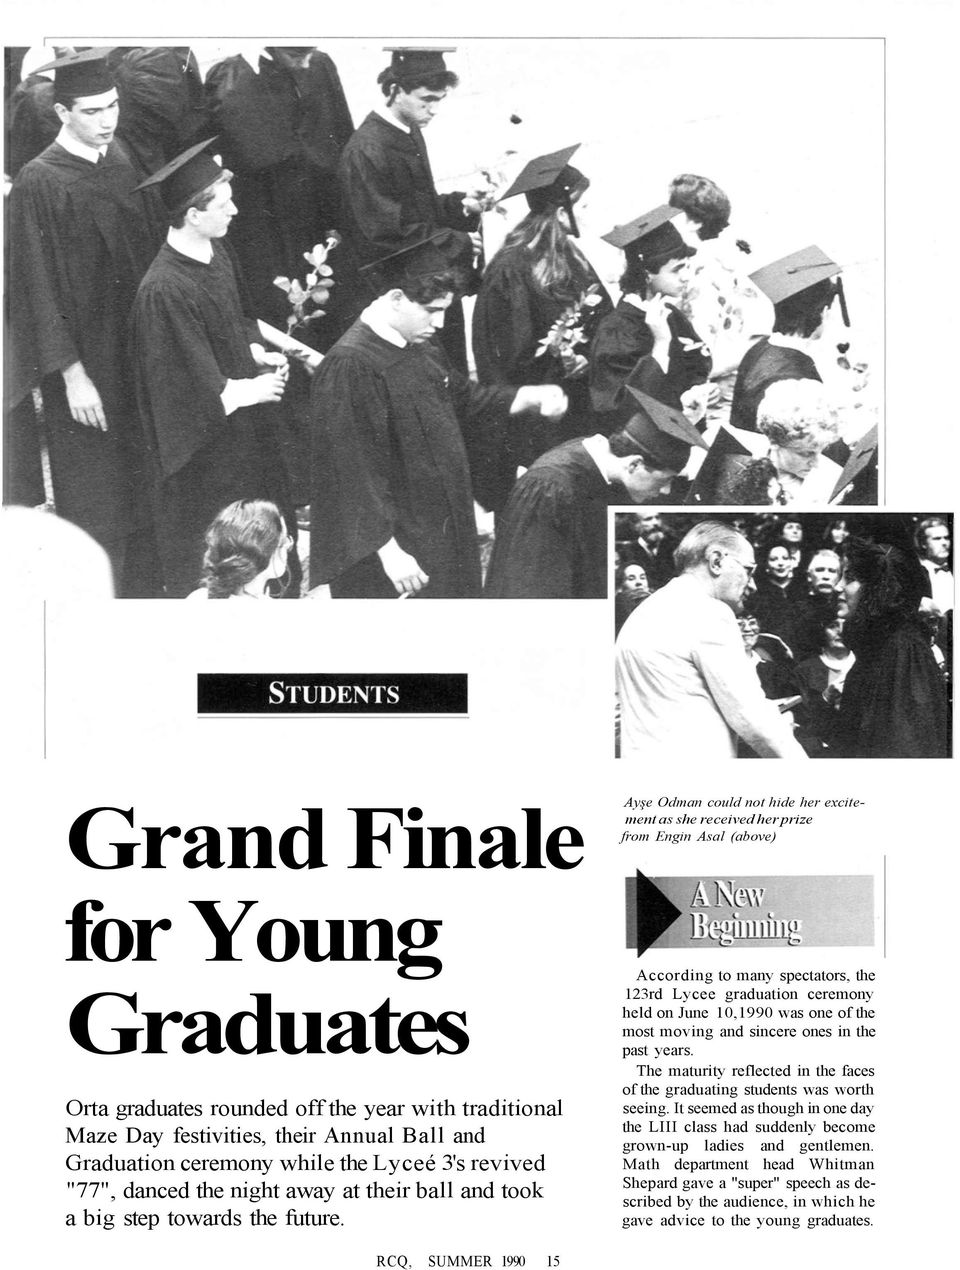 Ayşe Odman could not hide her excitement as she received her prize from Engin Asal (above) According to many spectators, the 123rd Lycee graduation ceremony held on June 10,1990 was one of the most